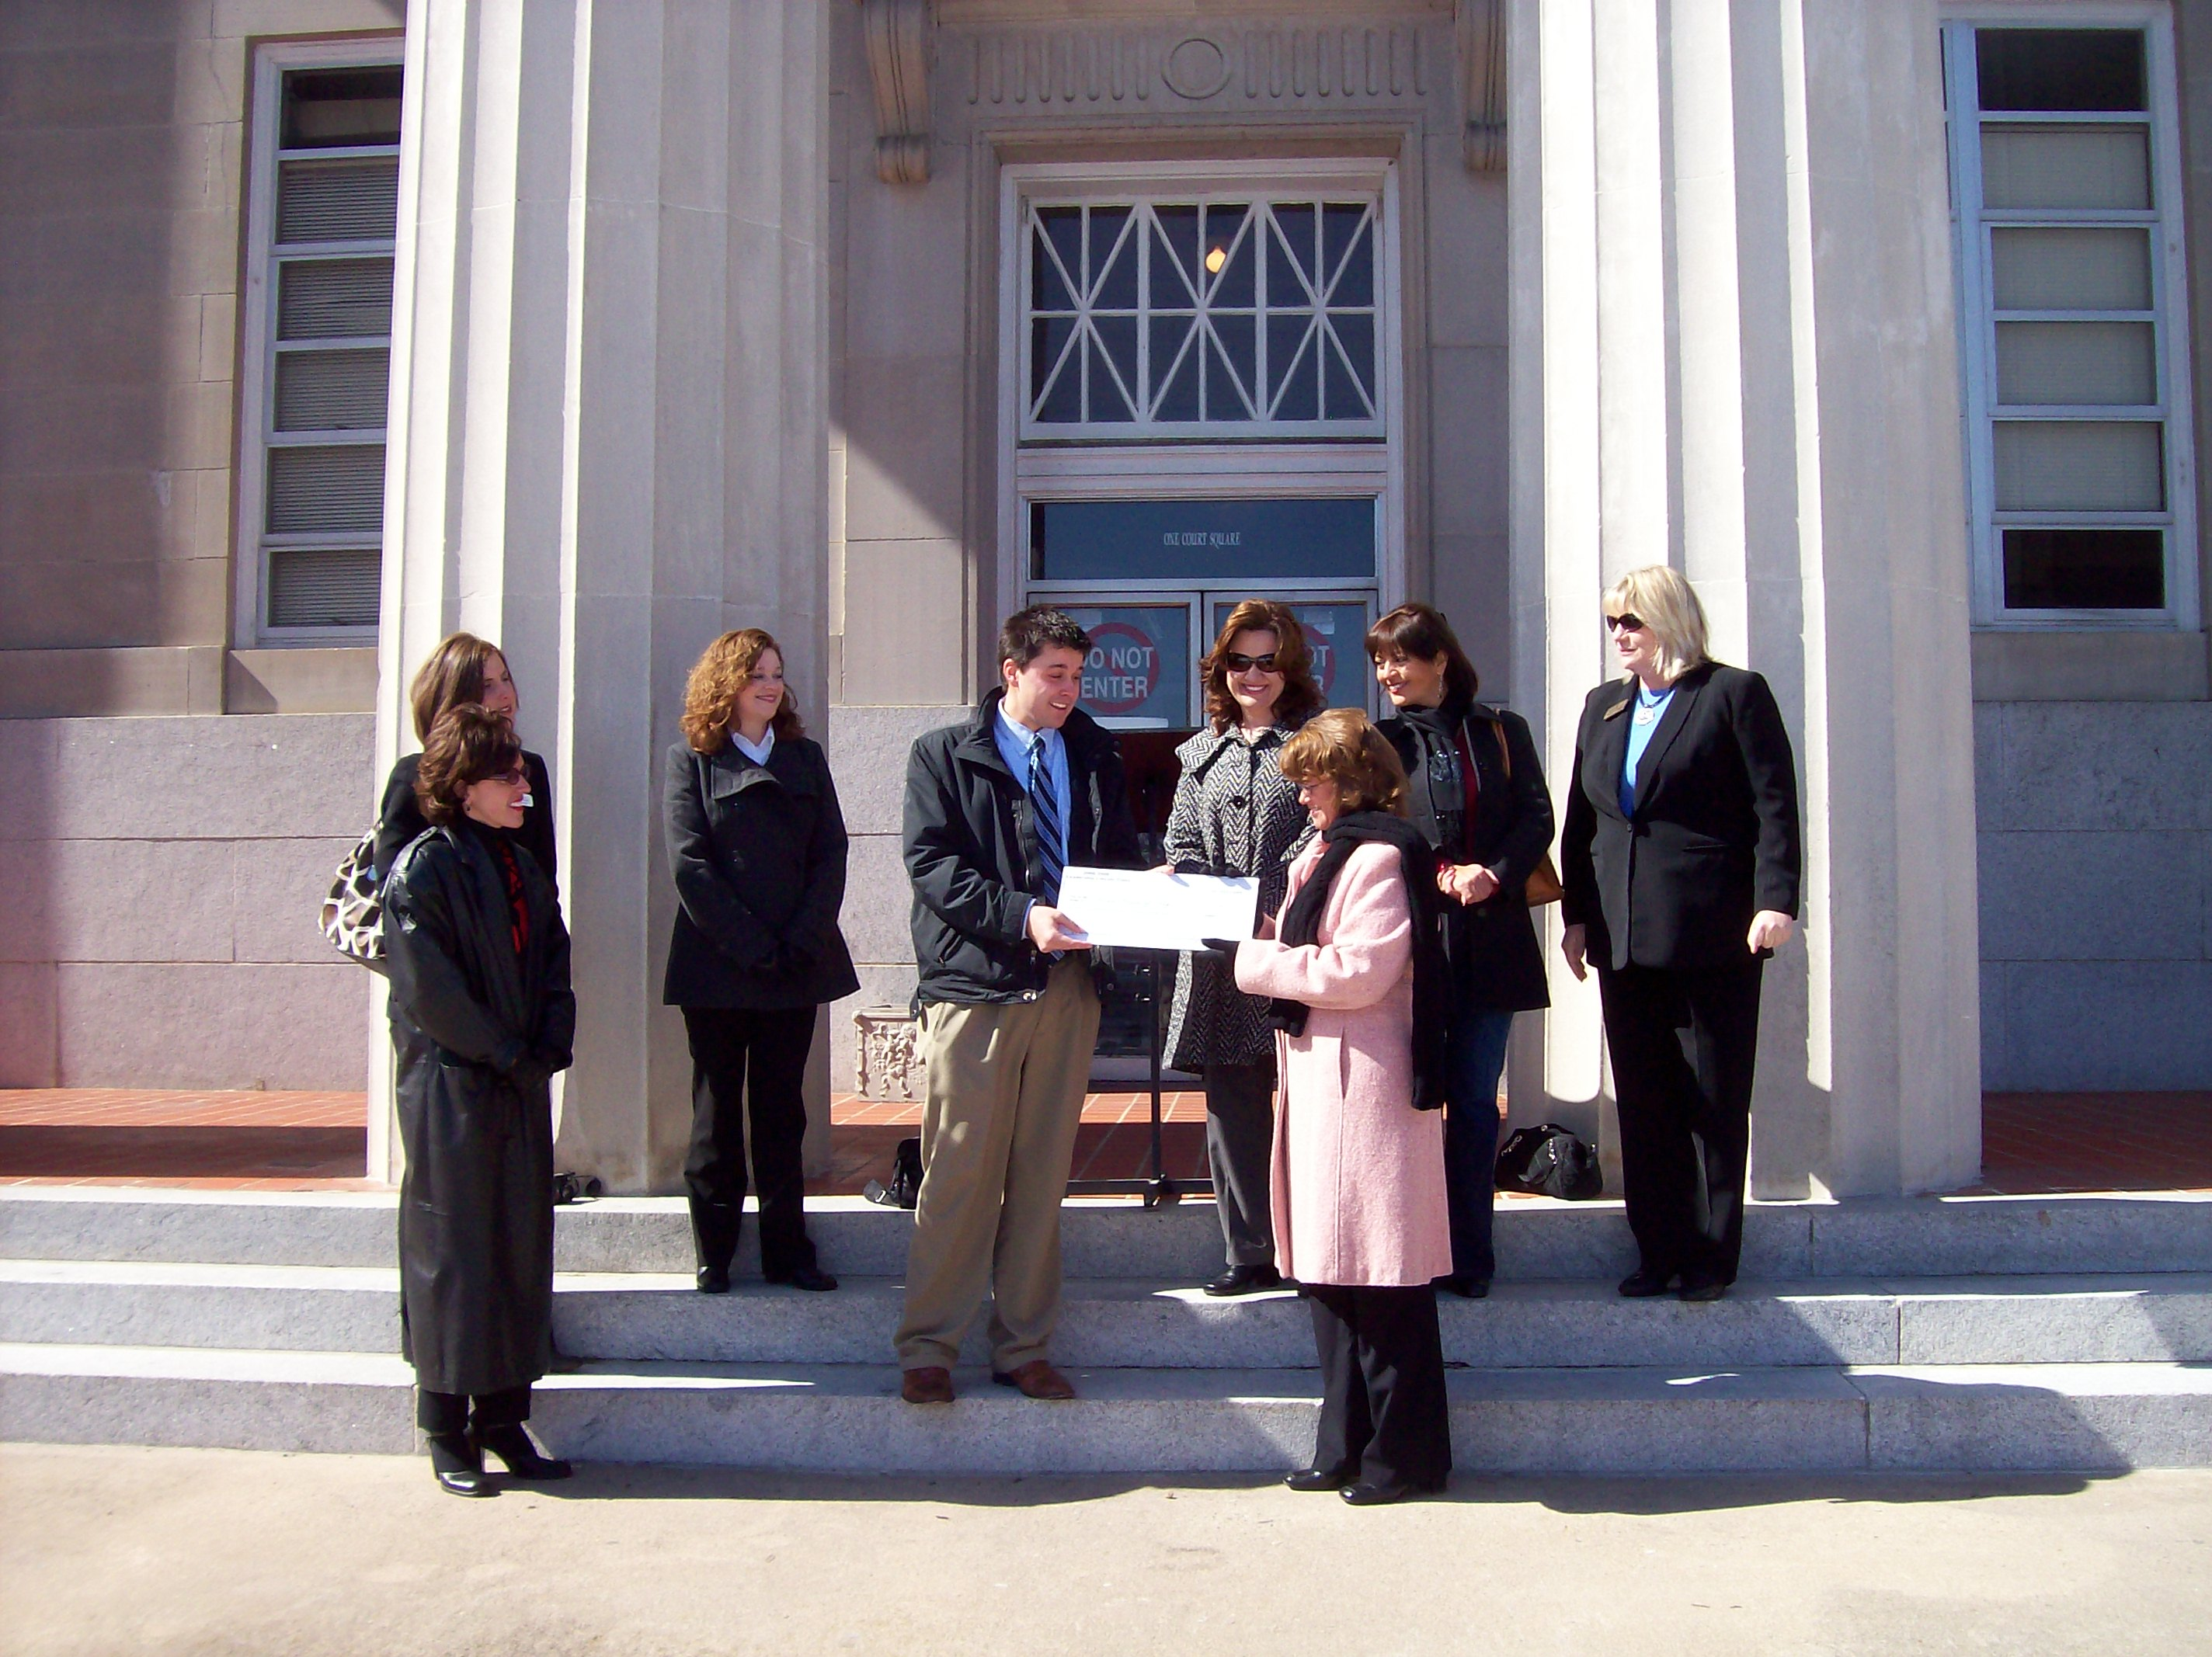 A group presents man with a check on steps